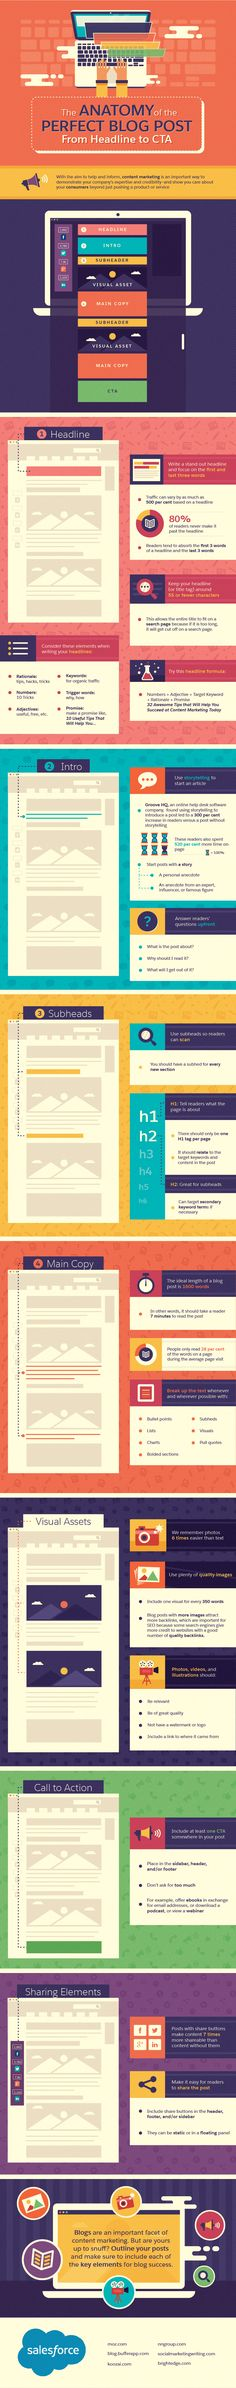 How to Create the Perfect Blog Post - #infographic